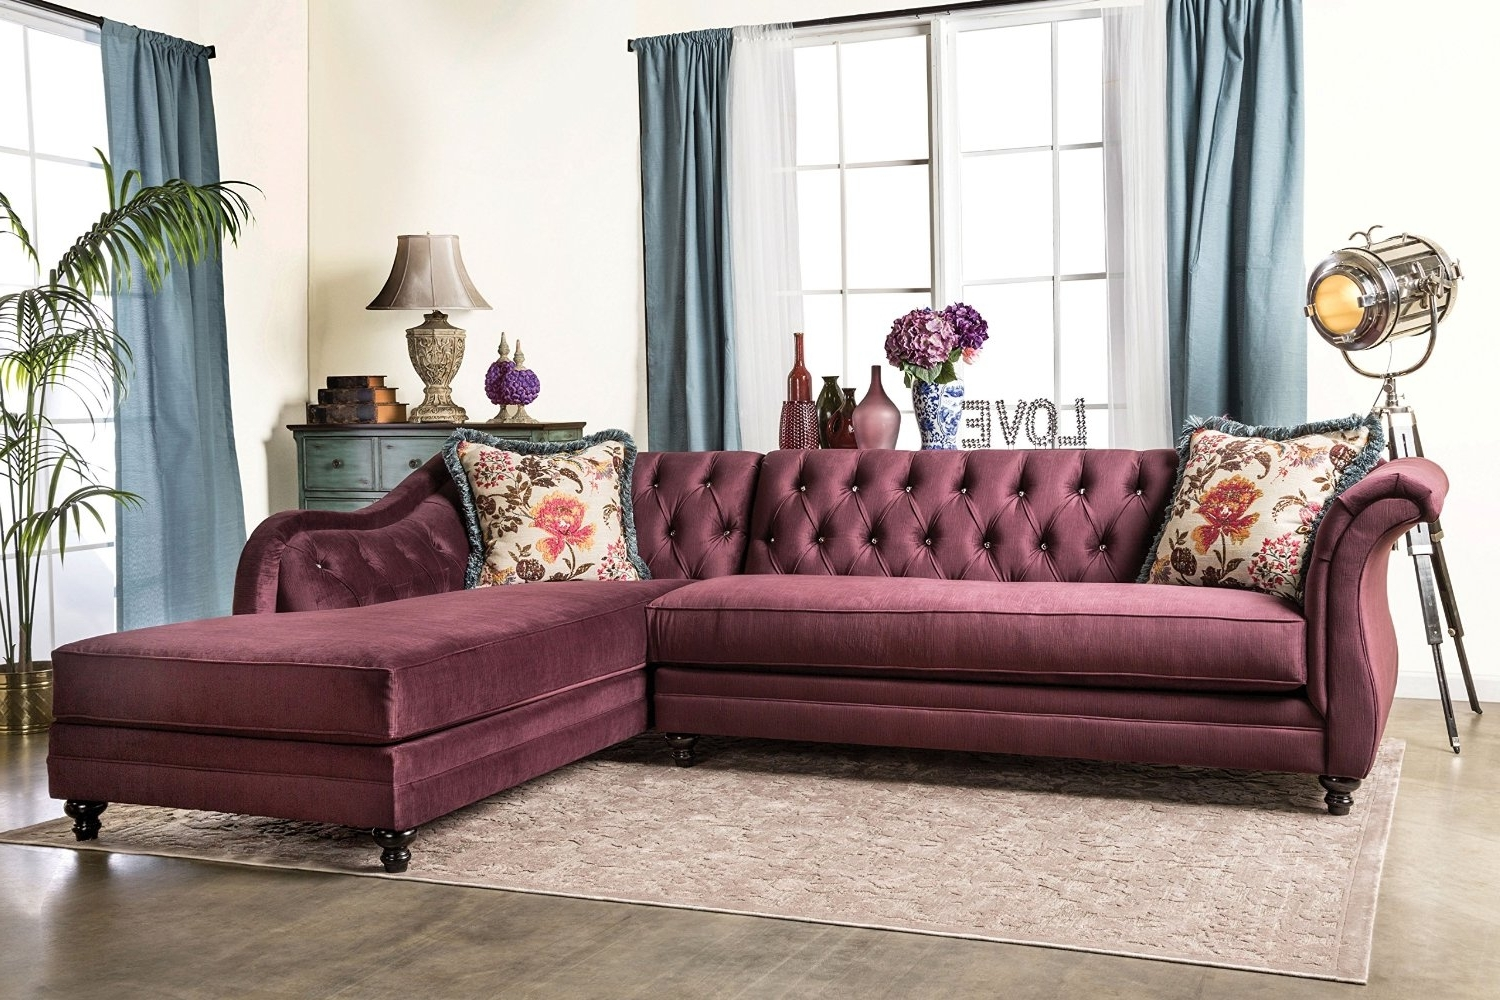 Well Known 25 Best Chesterfield Sofas To Buy In 2018 With Chesterfield Sofas (View 12 of 15)